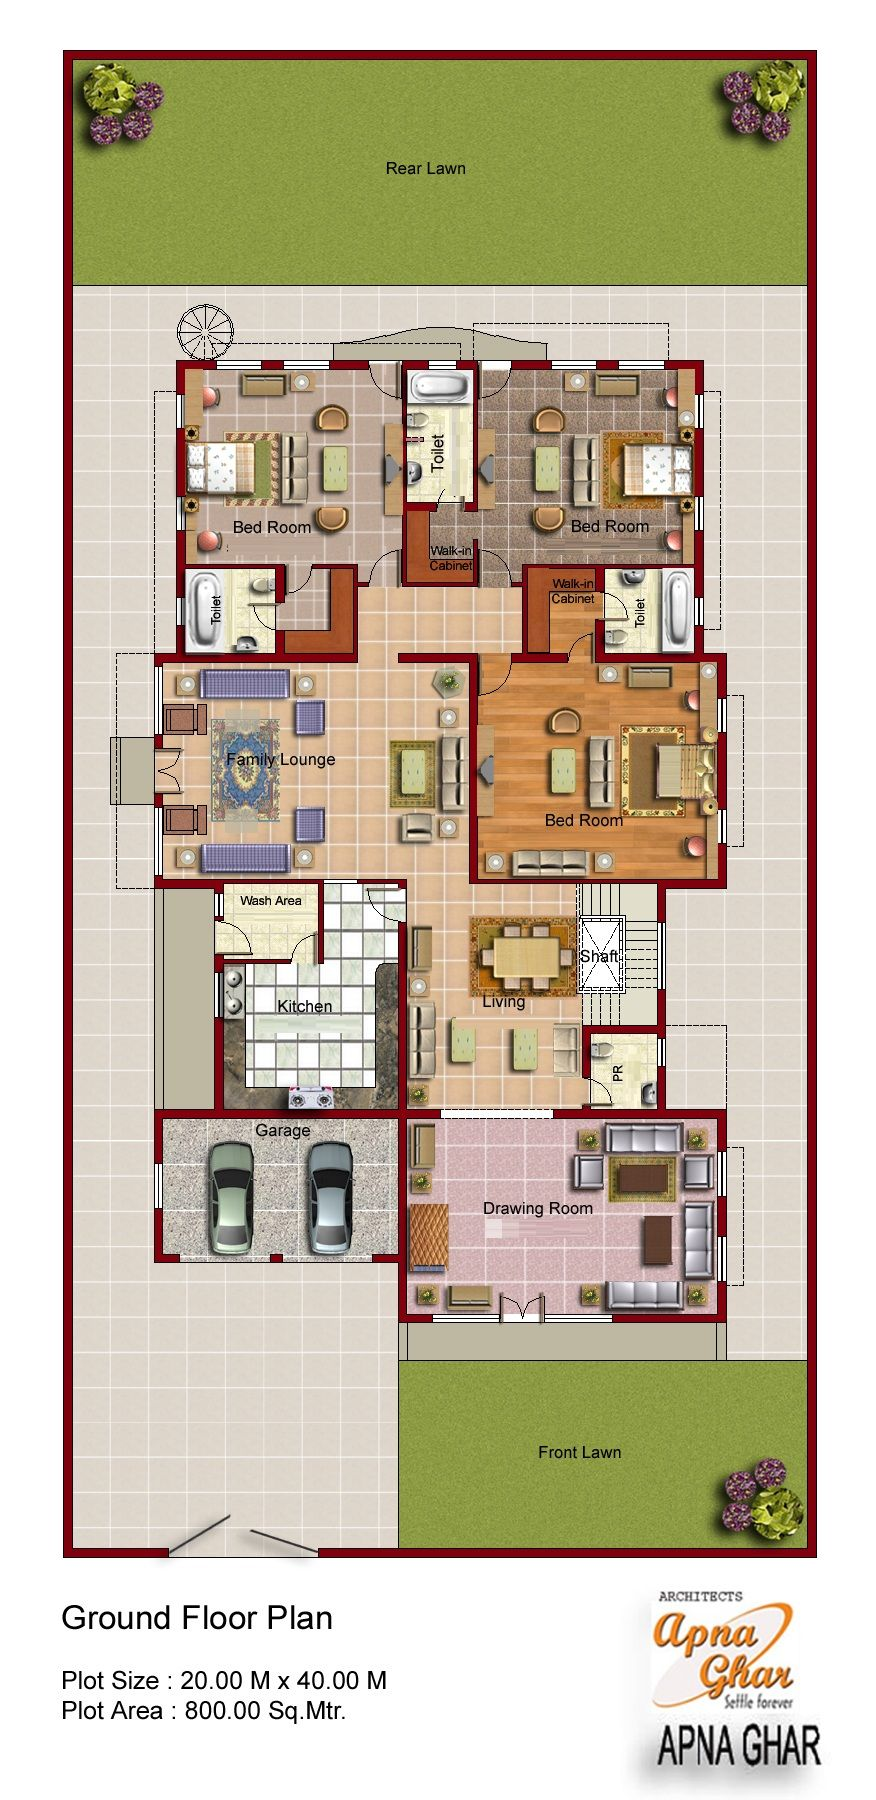 2d floor plan for modern duplex 2 floor house area 800 for House duplex plans